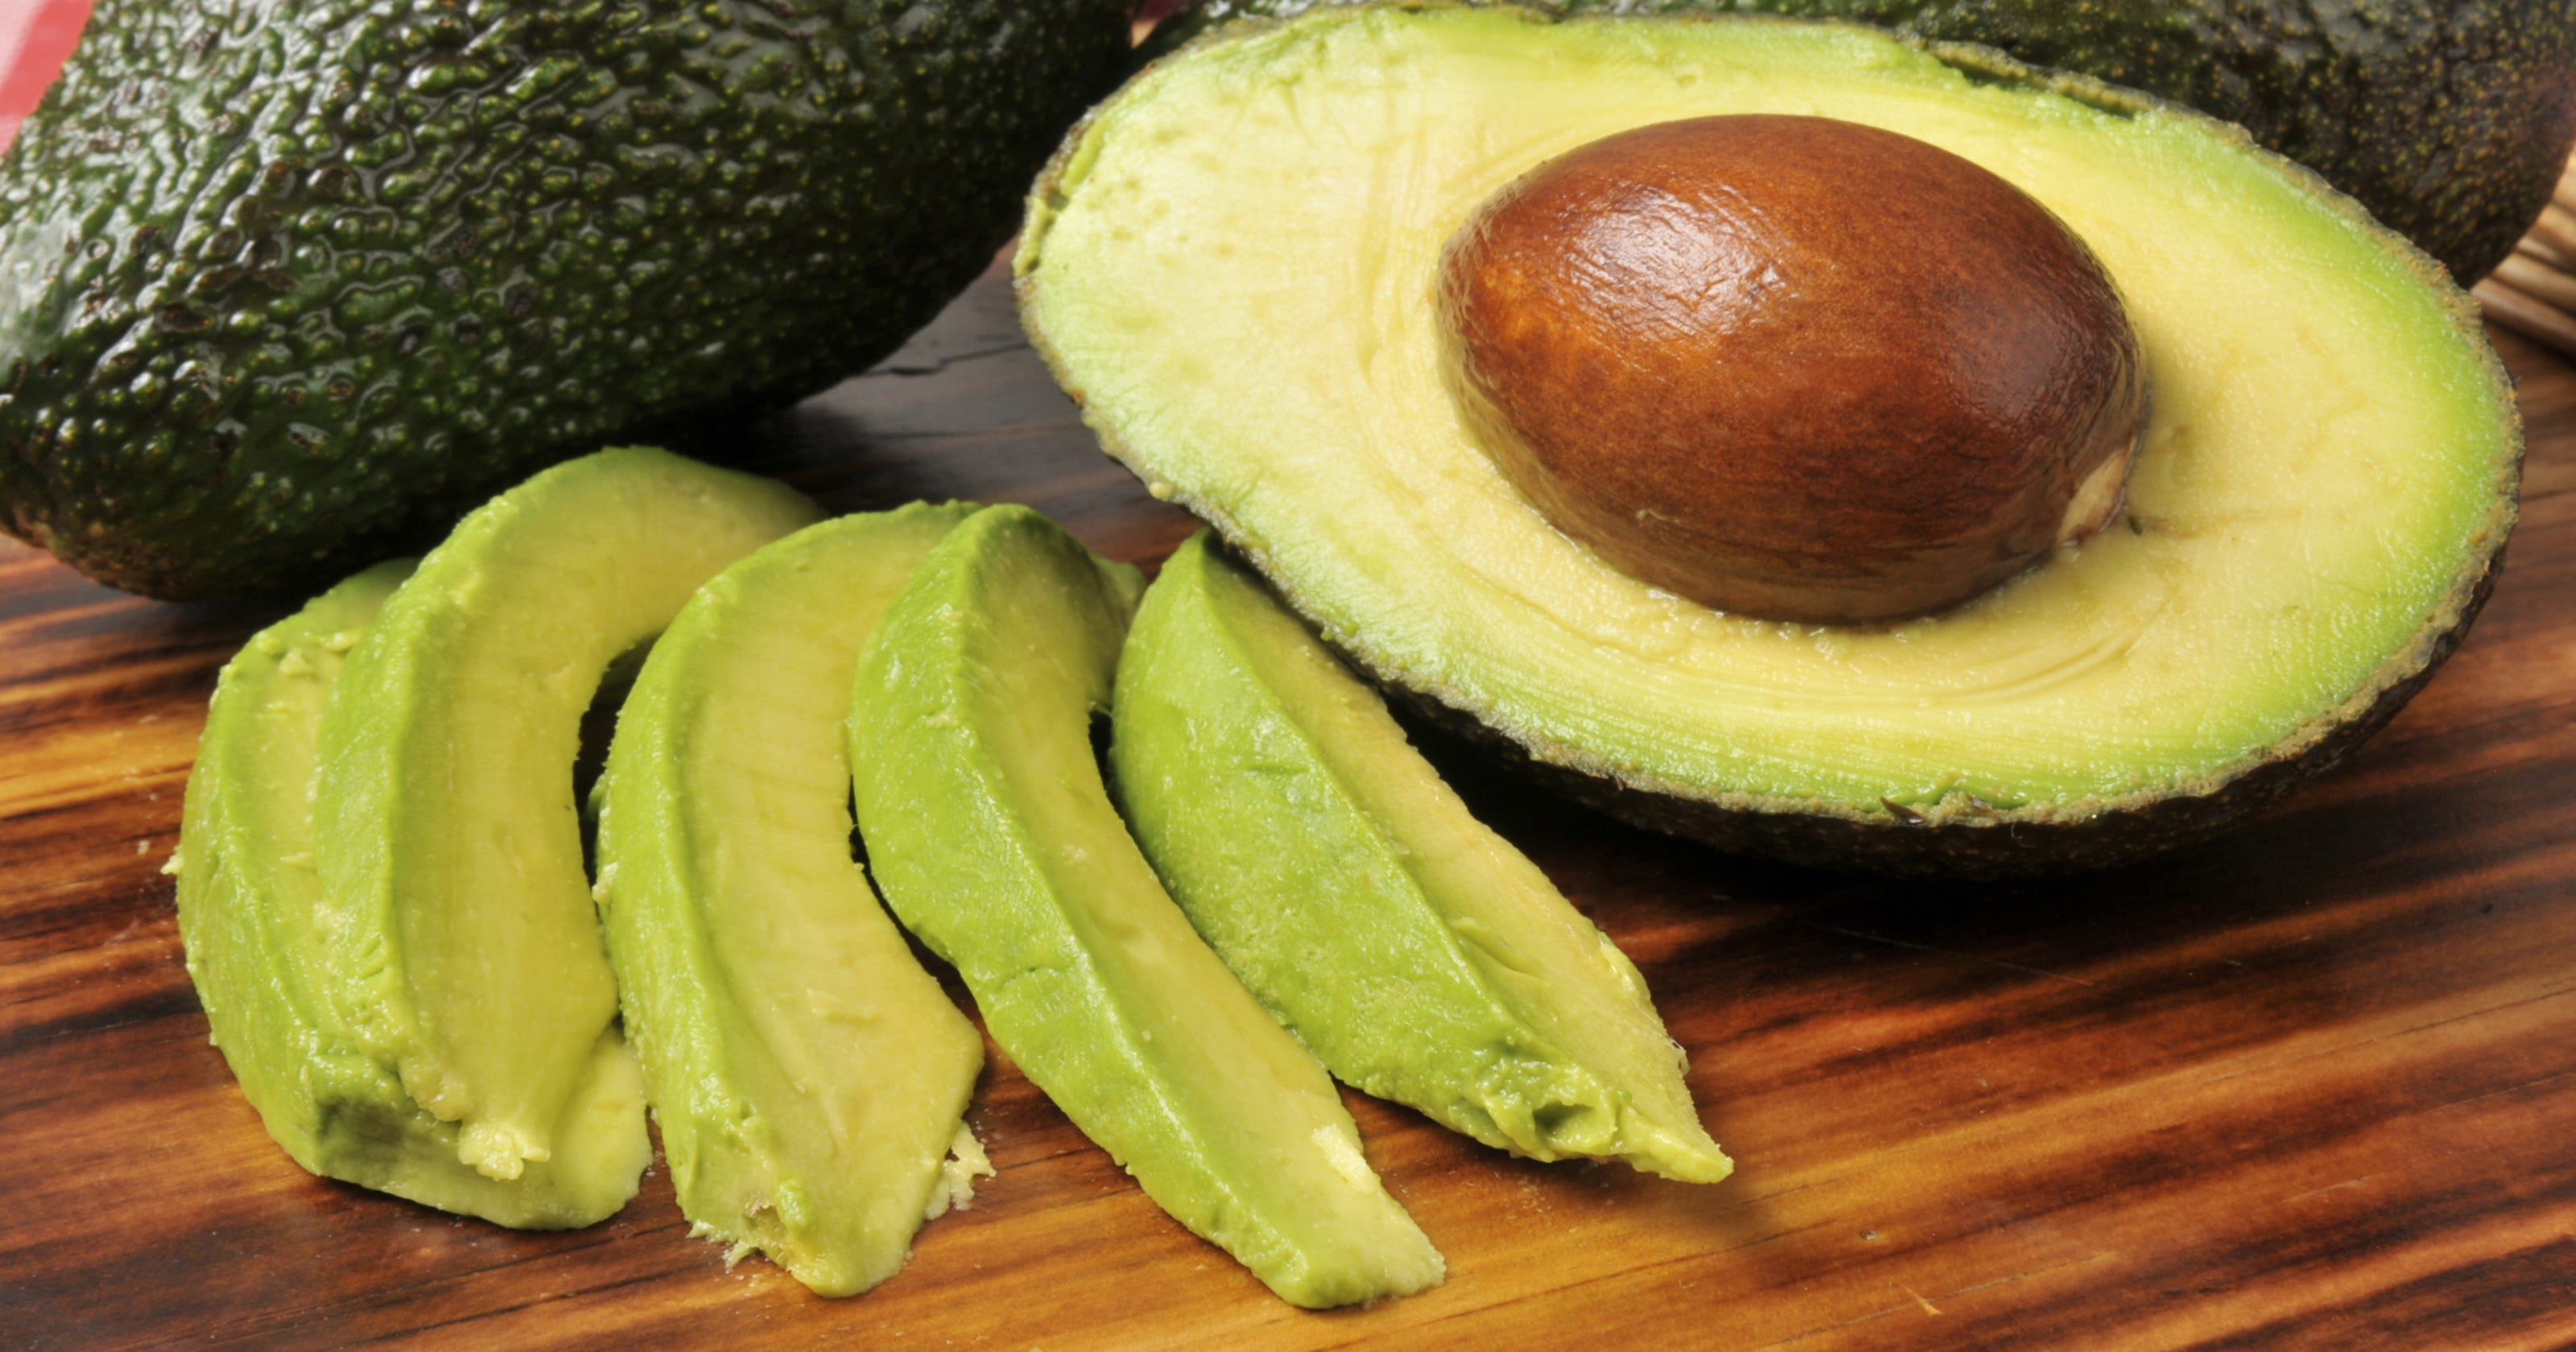 Phoenix restaurants recover from avocado shortage after